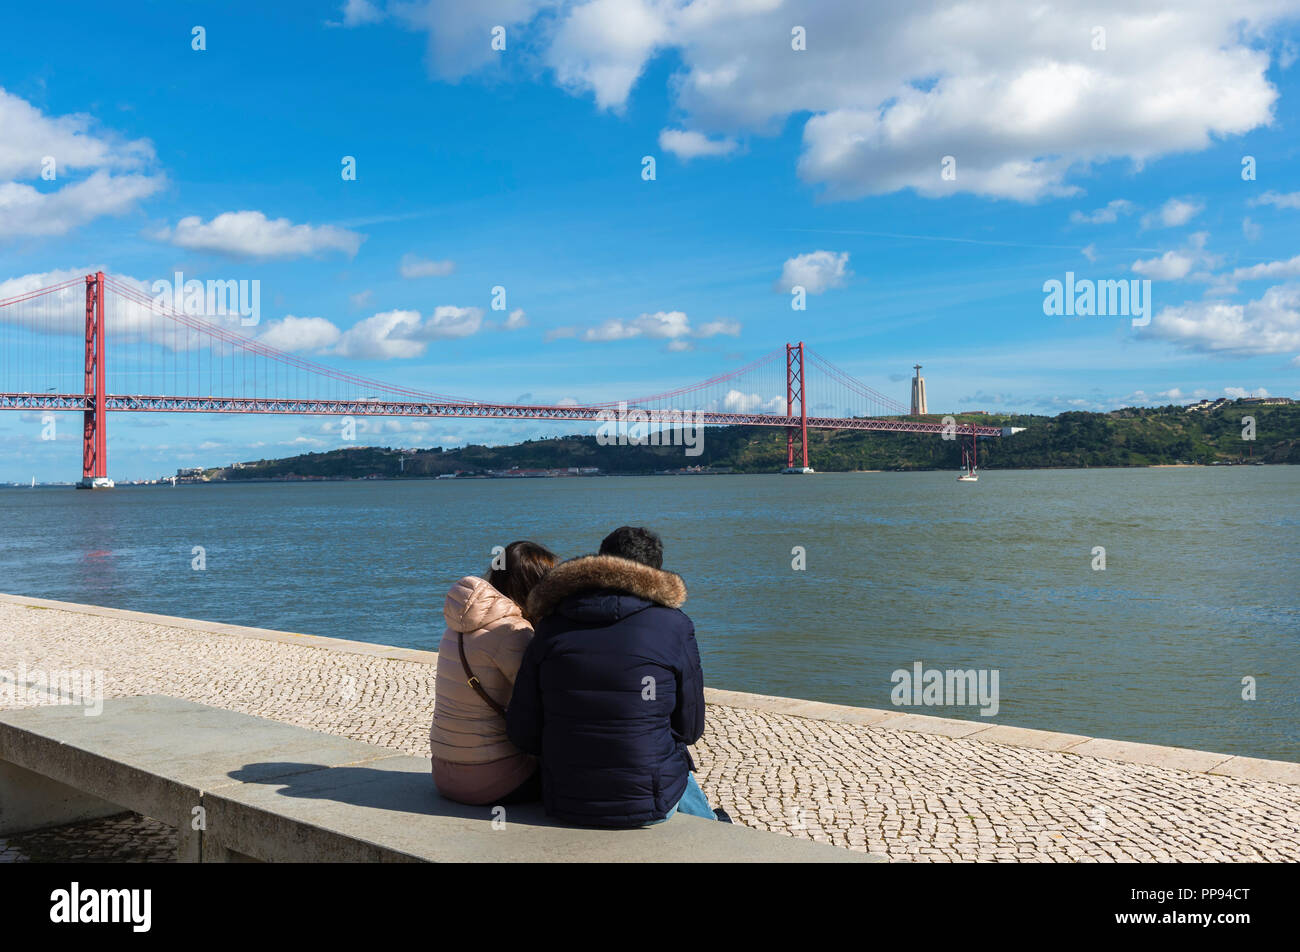 Young Couple seated on the Tagus riverfront and looking at the 25 April Bridge over the Tagus river, Lisbon, Portugal - Stock Image